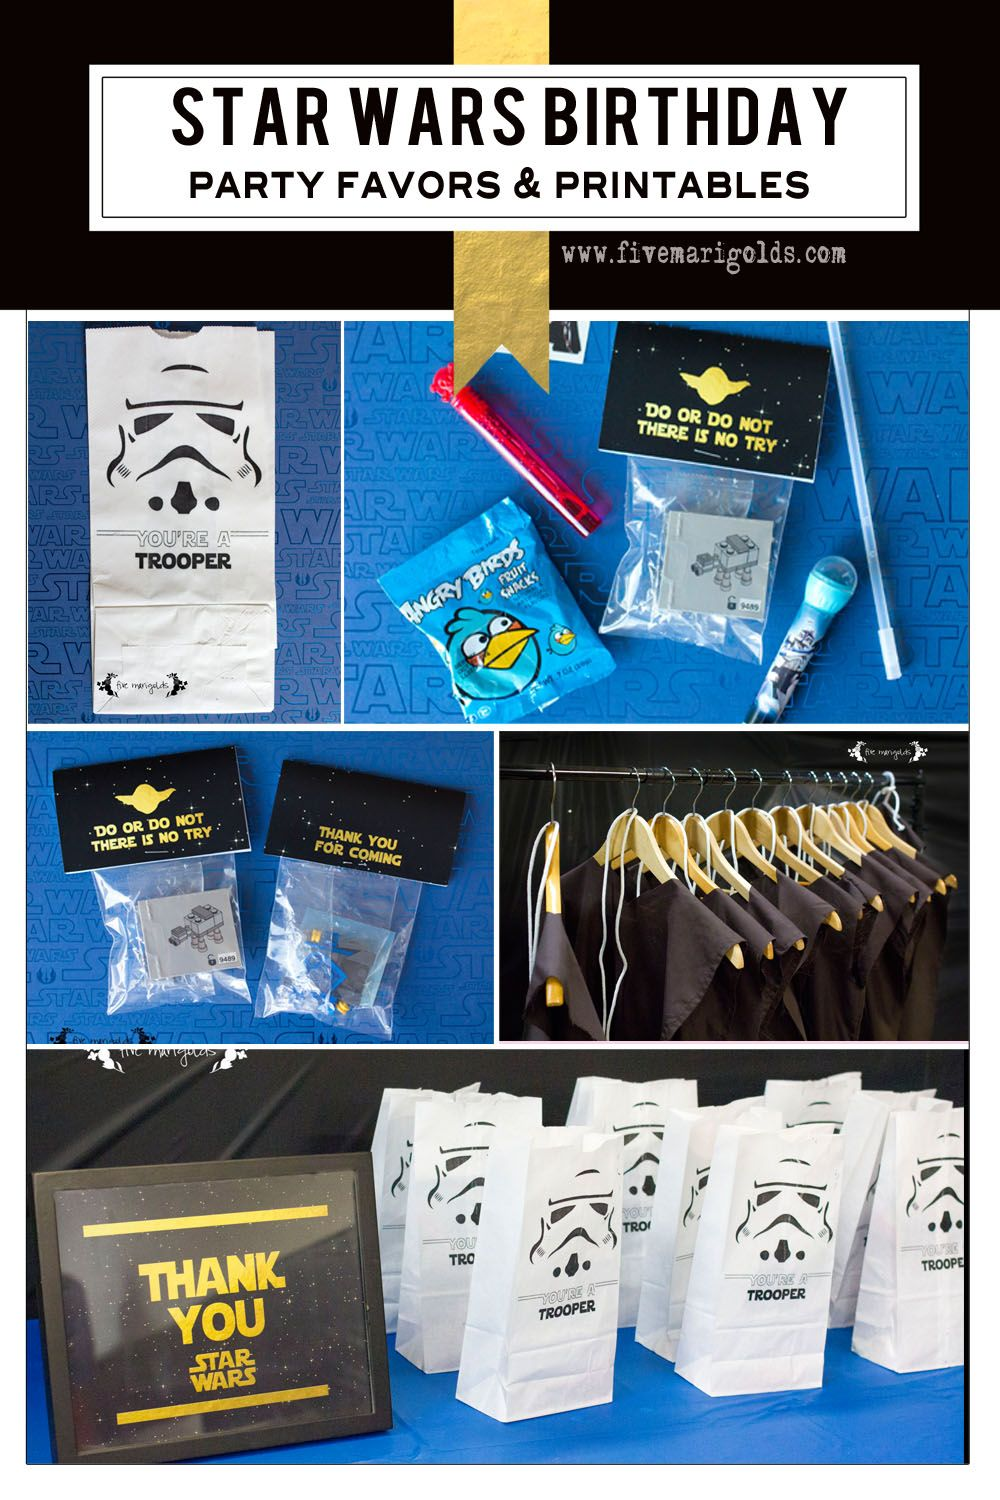 Diy Star Wars Birthday Favors Tips And Free Printables From Storm Trooper Goo Star Wars Party Favors Star Wars Birthday Party Star Wars Birthday Party Favors